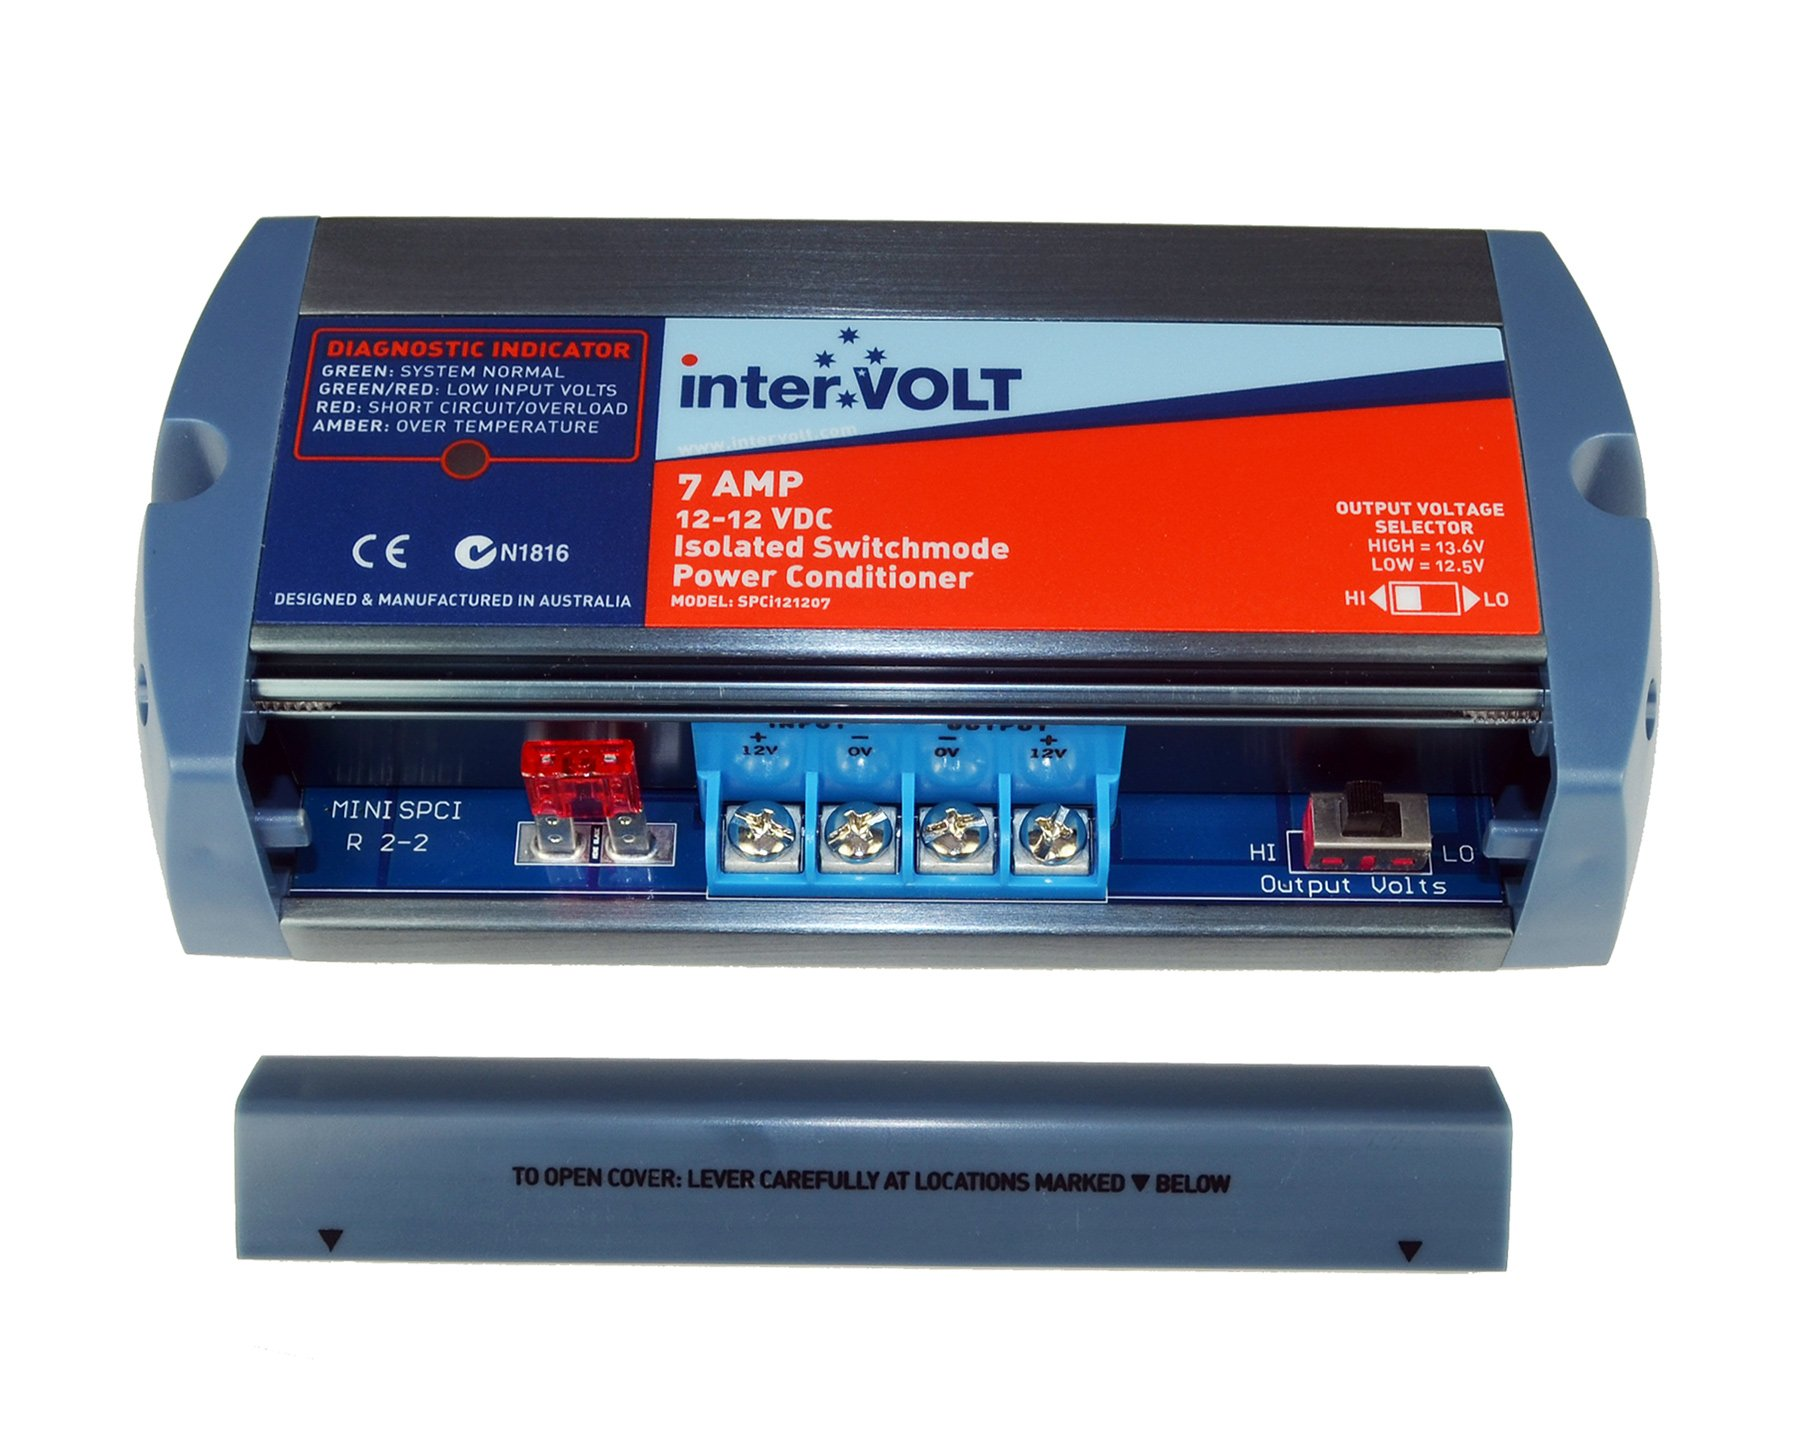 interVOLT Heavy Duty 7 Amp 12V DC-DC Isolated Voltage Stabilizer / Regulator / Power Conditioner / Battery Charger (10-16 VDC Input - 12.5 or 13.6 VDC Output) Model SPCi121207 by interVOLT (Image #3)